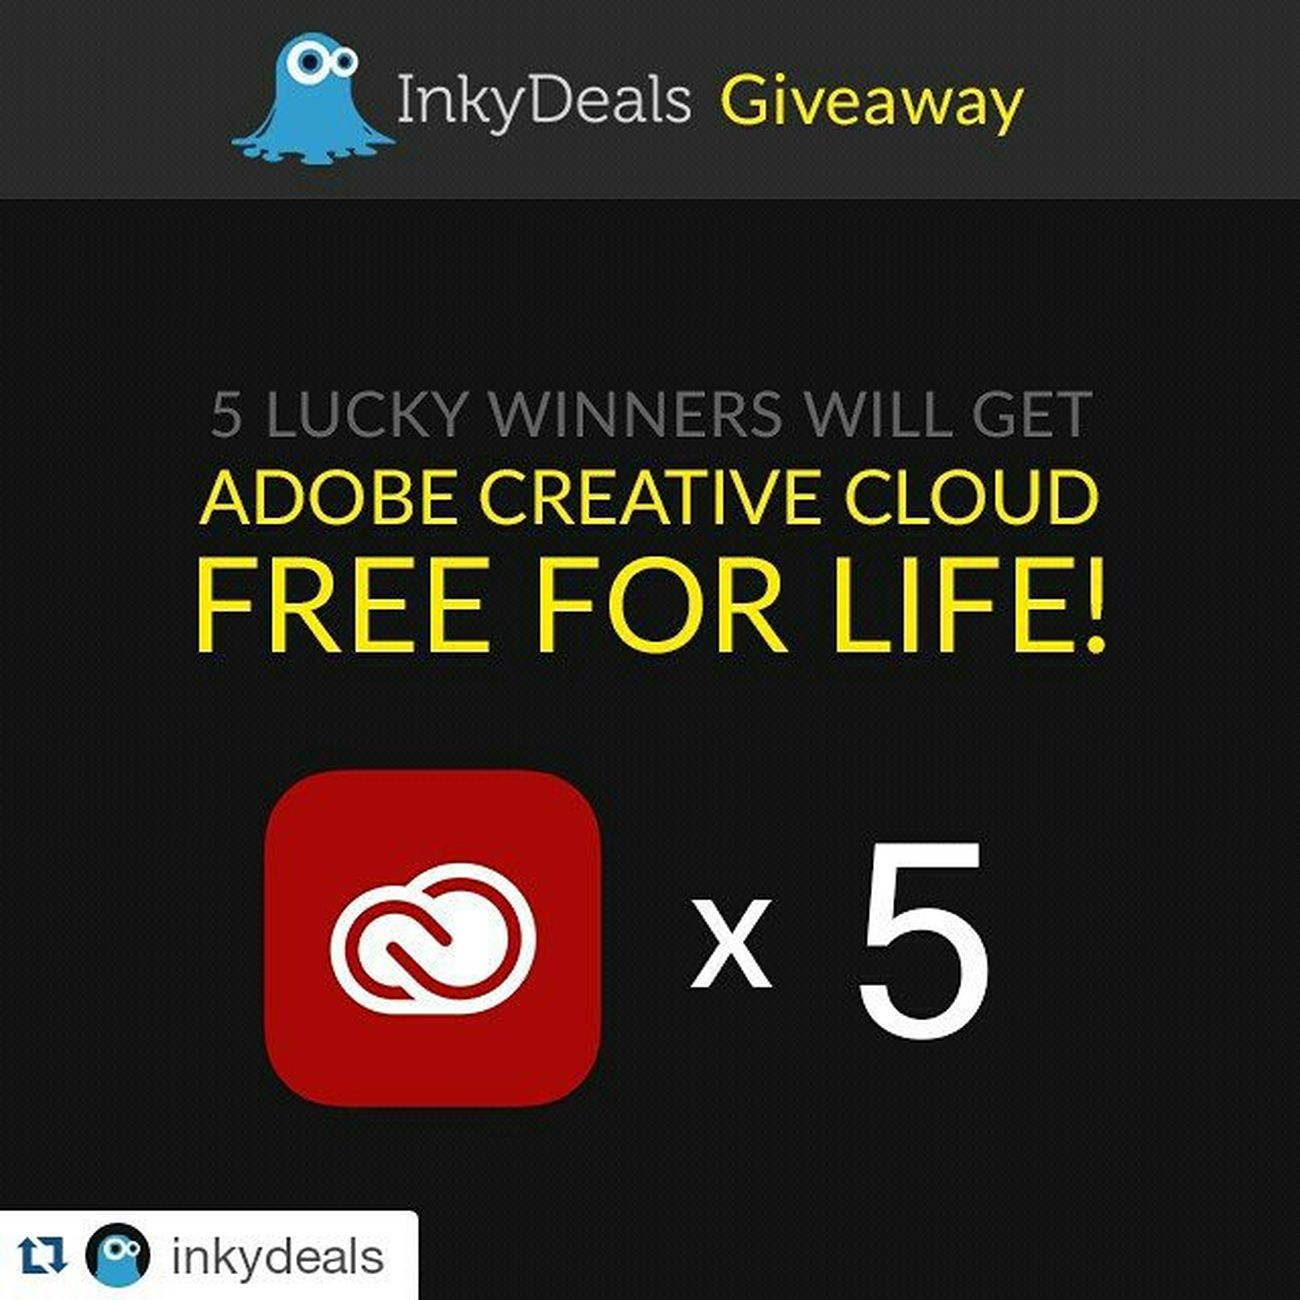 Repost @inkydeals ・・・ Enter our giveaway to win Adobe CC for life Free! This is your once in a lifetime chance to get an account paid in full by us every year forever! Giveaway link in profile Adobe Design Adobeillustrator Adobephotoshop Adobecc Graphicdesign Free ArtWork Cooldesign Webdesign Creative Photoshop Cool Amazing Win Awesome Designers Typography Giveaways Contest Illustrations